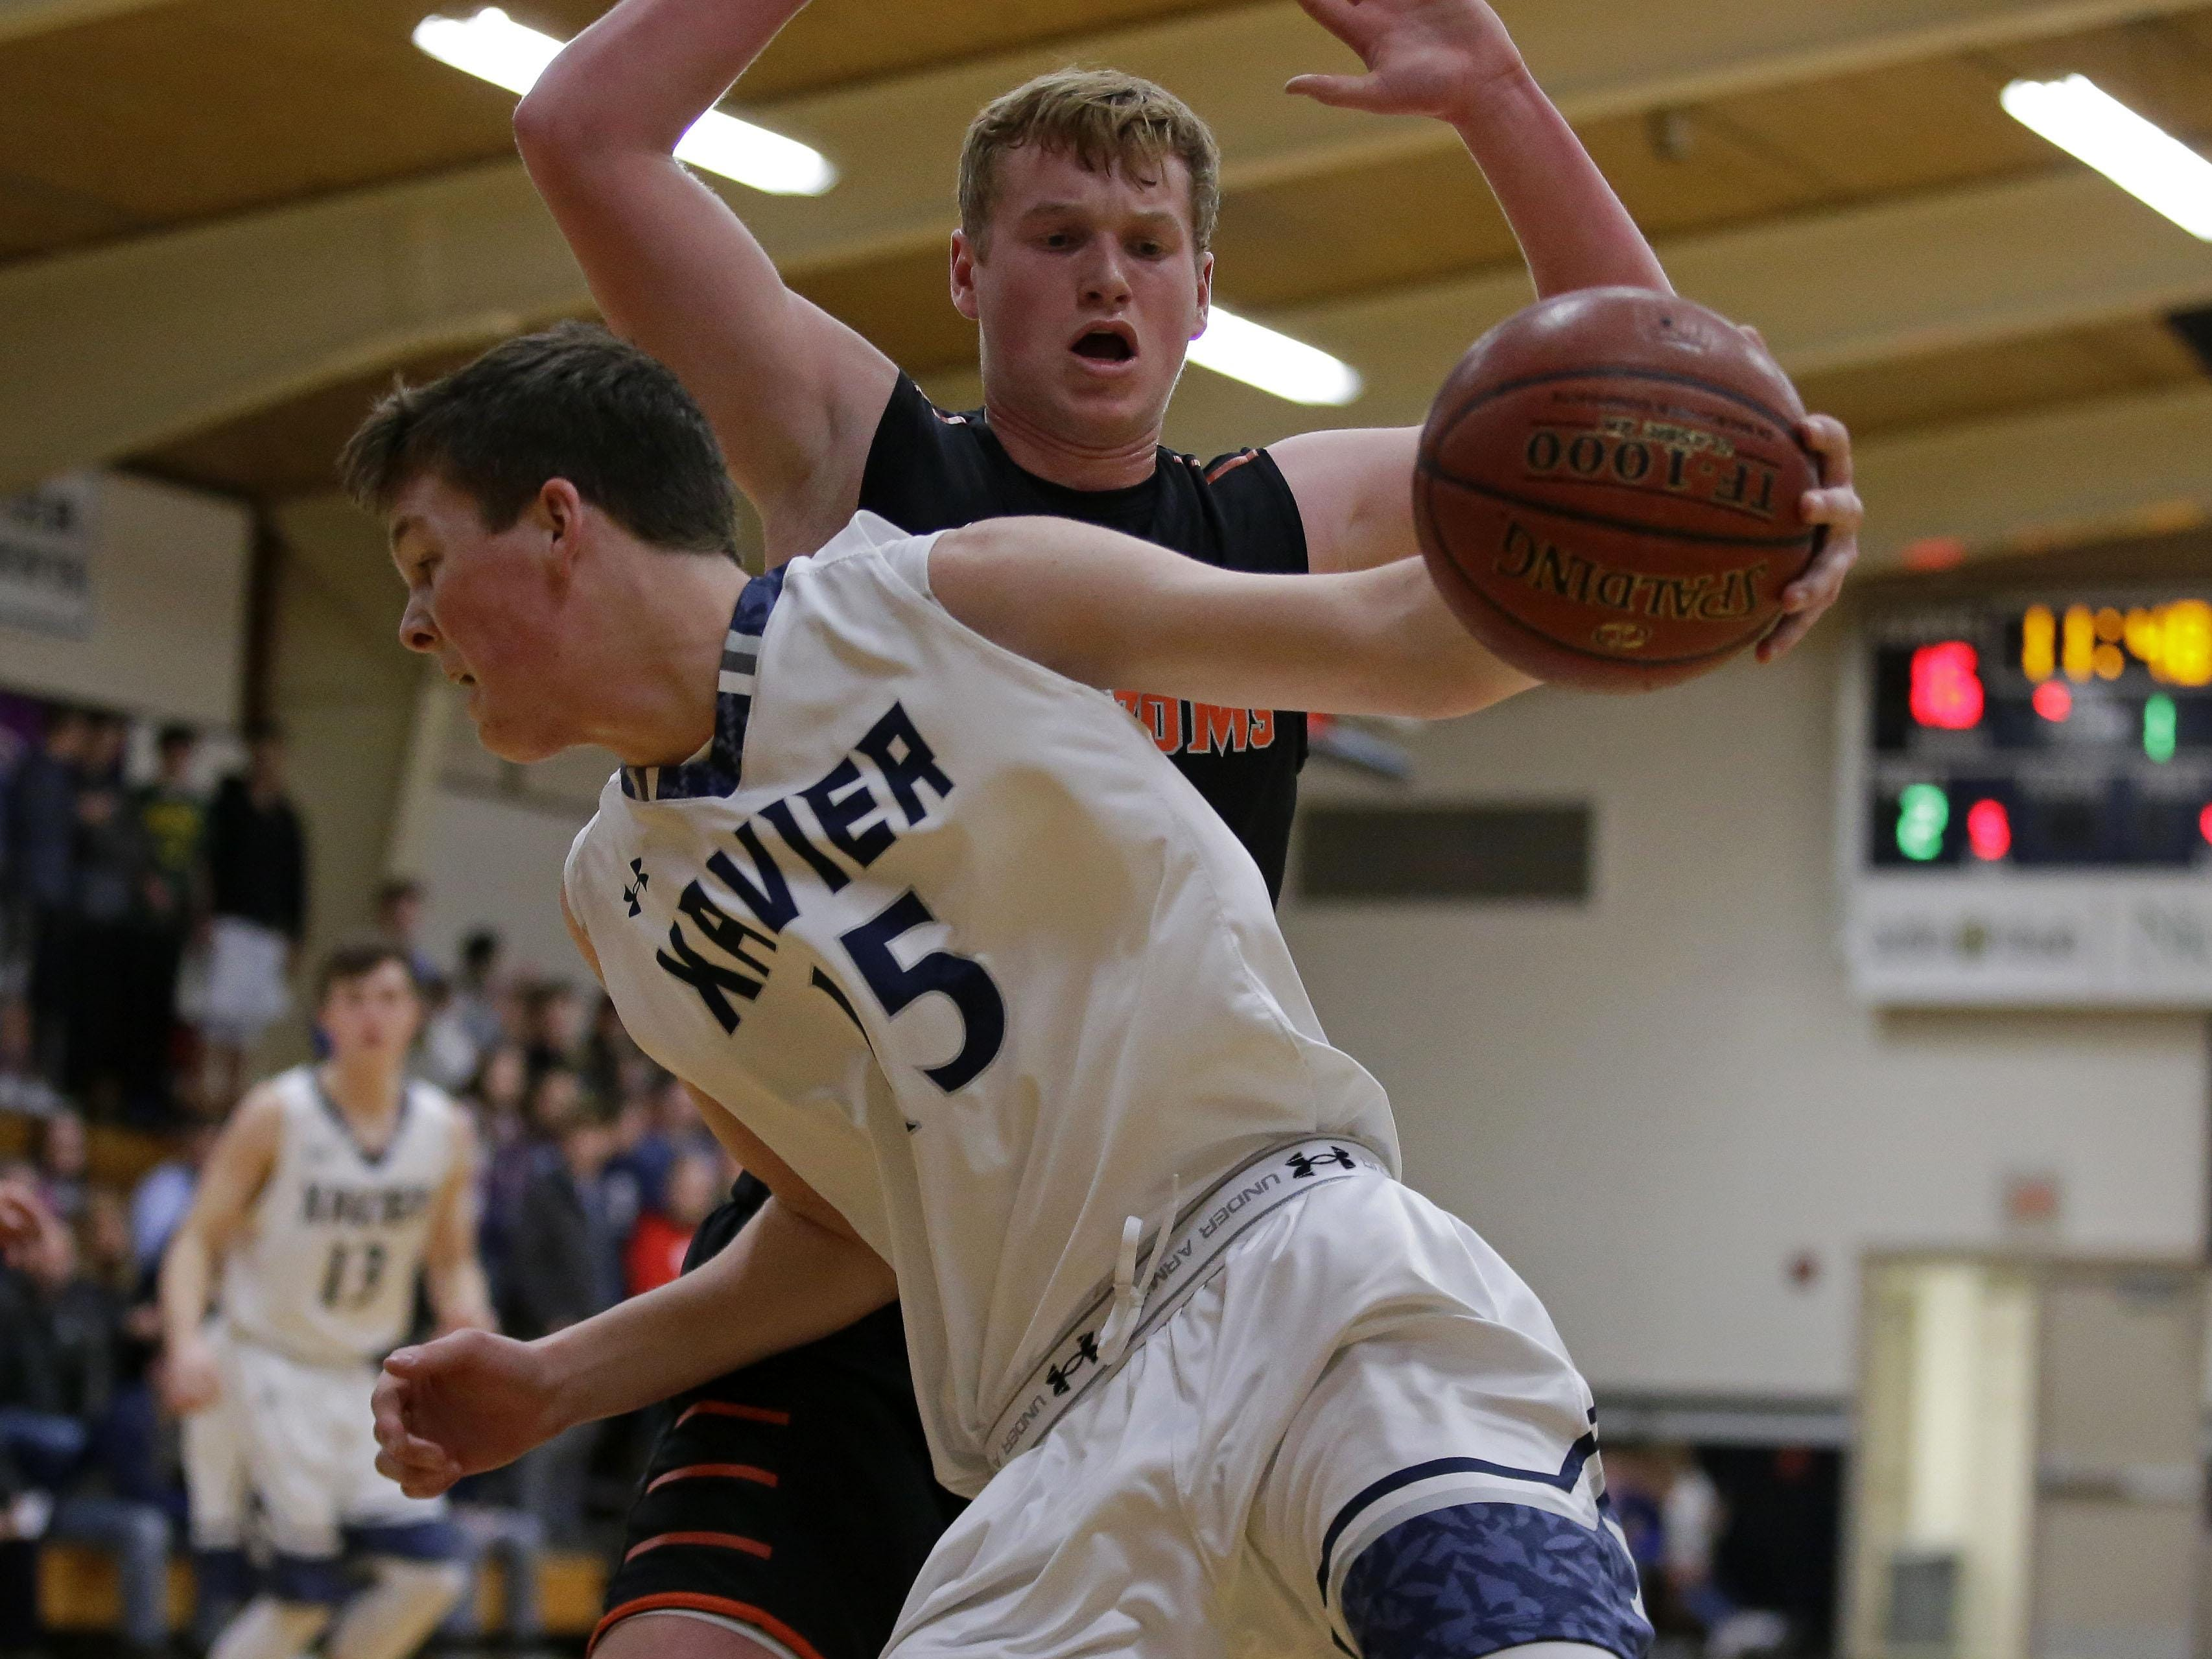 Nate DeYoung of the Xavier Hawks works the baseline against Jake Karchinski of the West De Pere Phantoms in Bay Conference basketball Thursday, February 9, 2017, at Xavier High School in Appleton, Wisconsin.Ron Page/USA TODAY NETWORK-Wisconsin